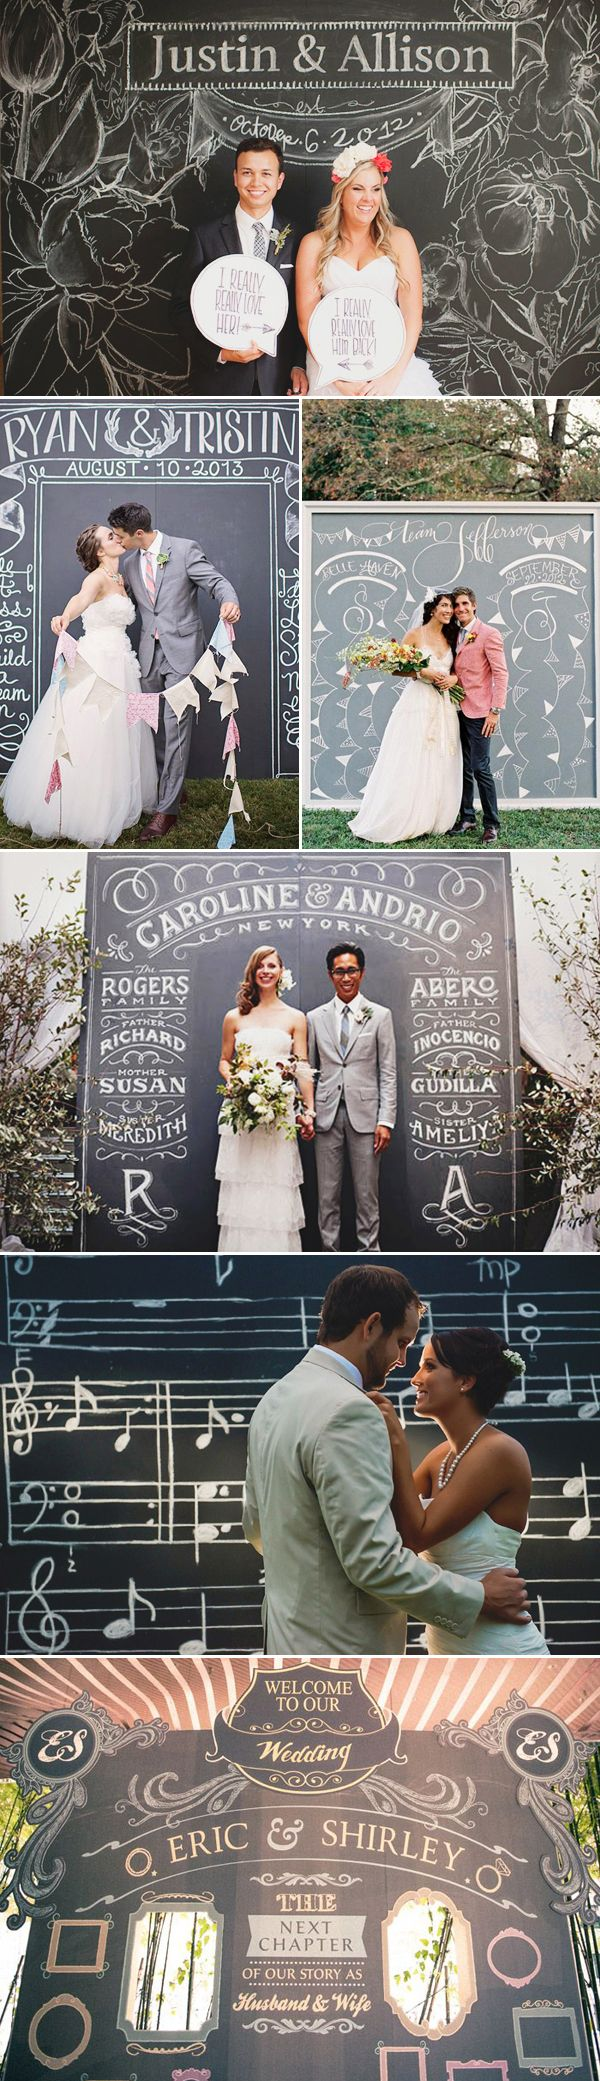 Guest DIY Chalkboard Wedding Backdrop / http://www.deerpearlflowers.com/53-super-creative-wedding-photo-backdrops/